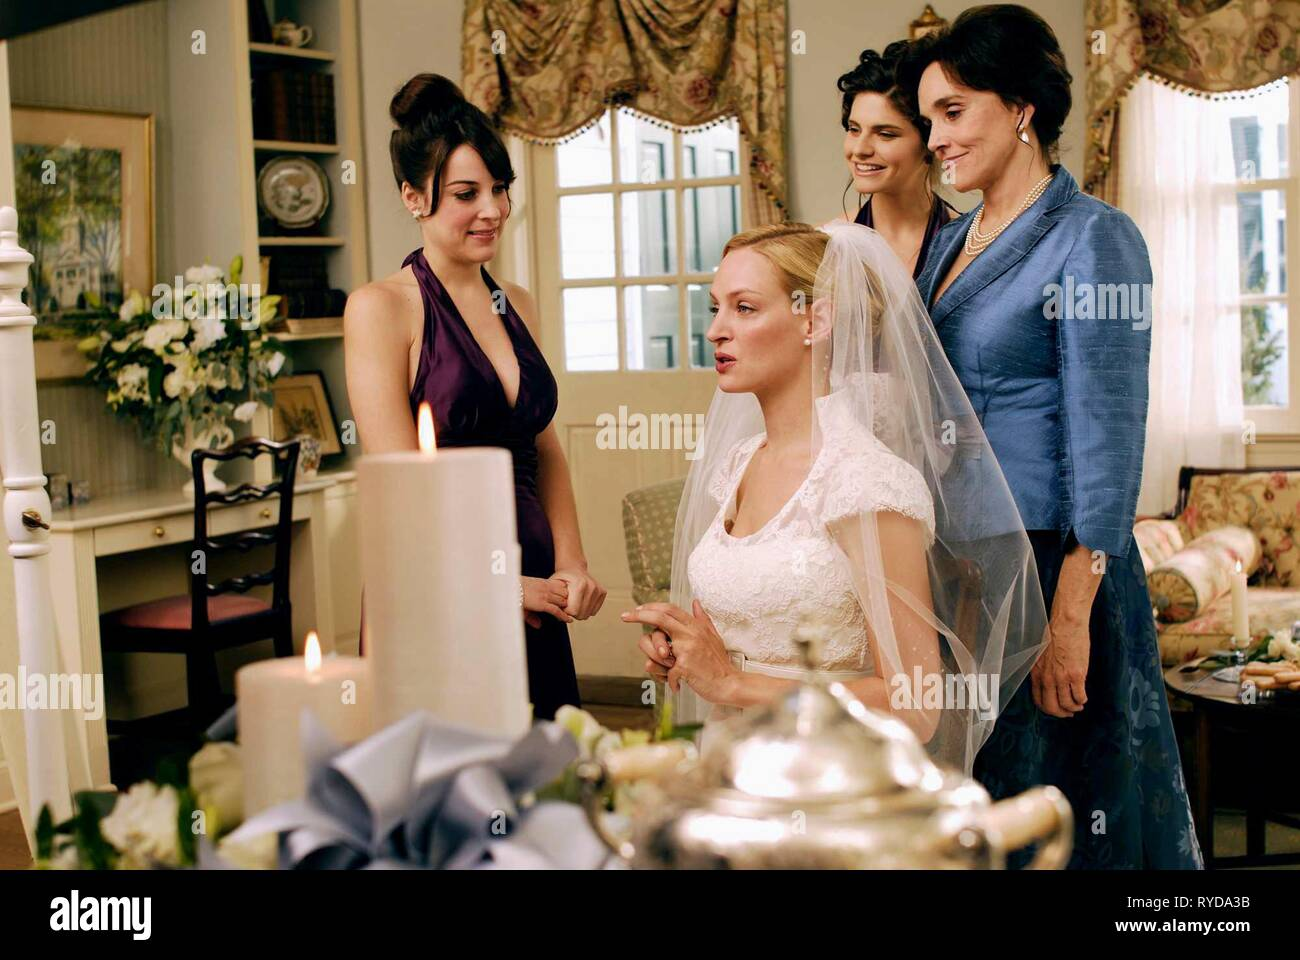 LINDSAY SLOANE, Uma Thurman, LINDSEY KRAFT,BROOKE ADAMS, THE ACCIDENTAL HUSBAND, 2008 Photo Stock